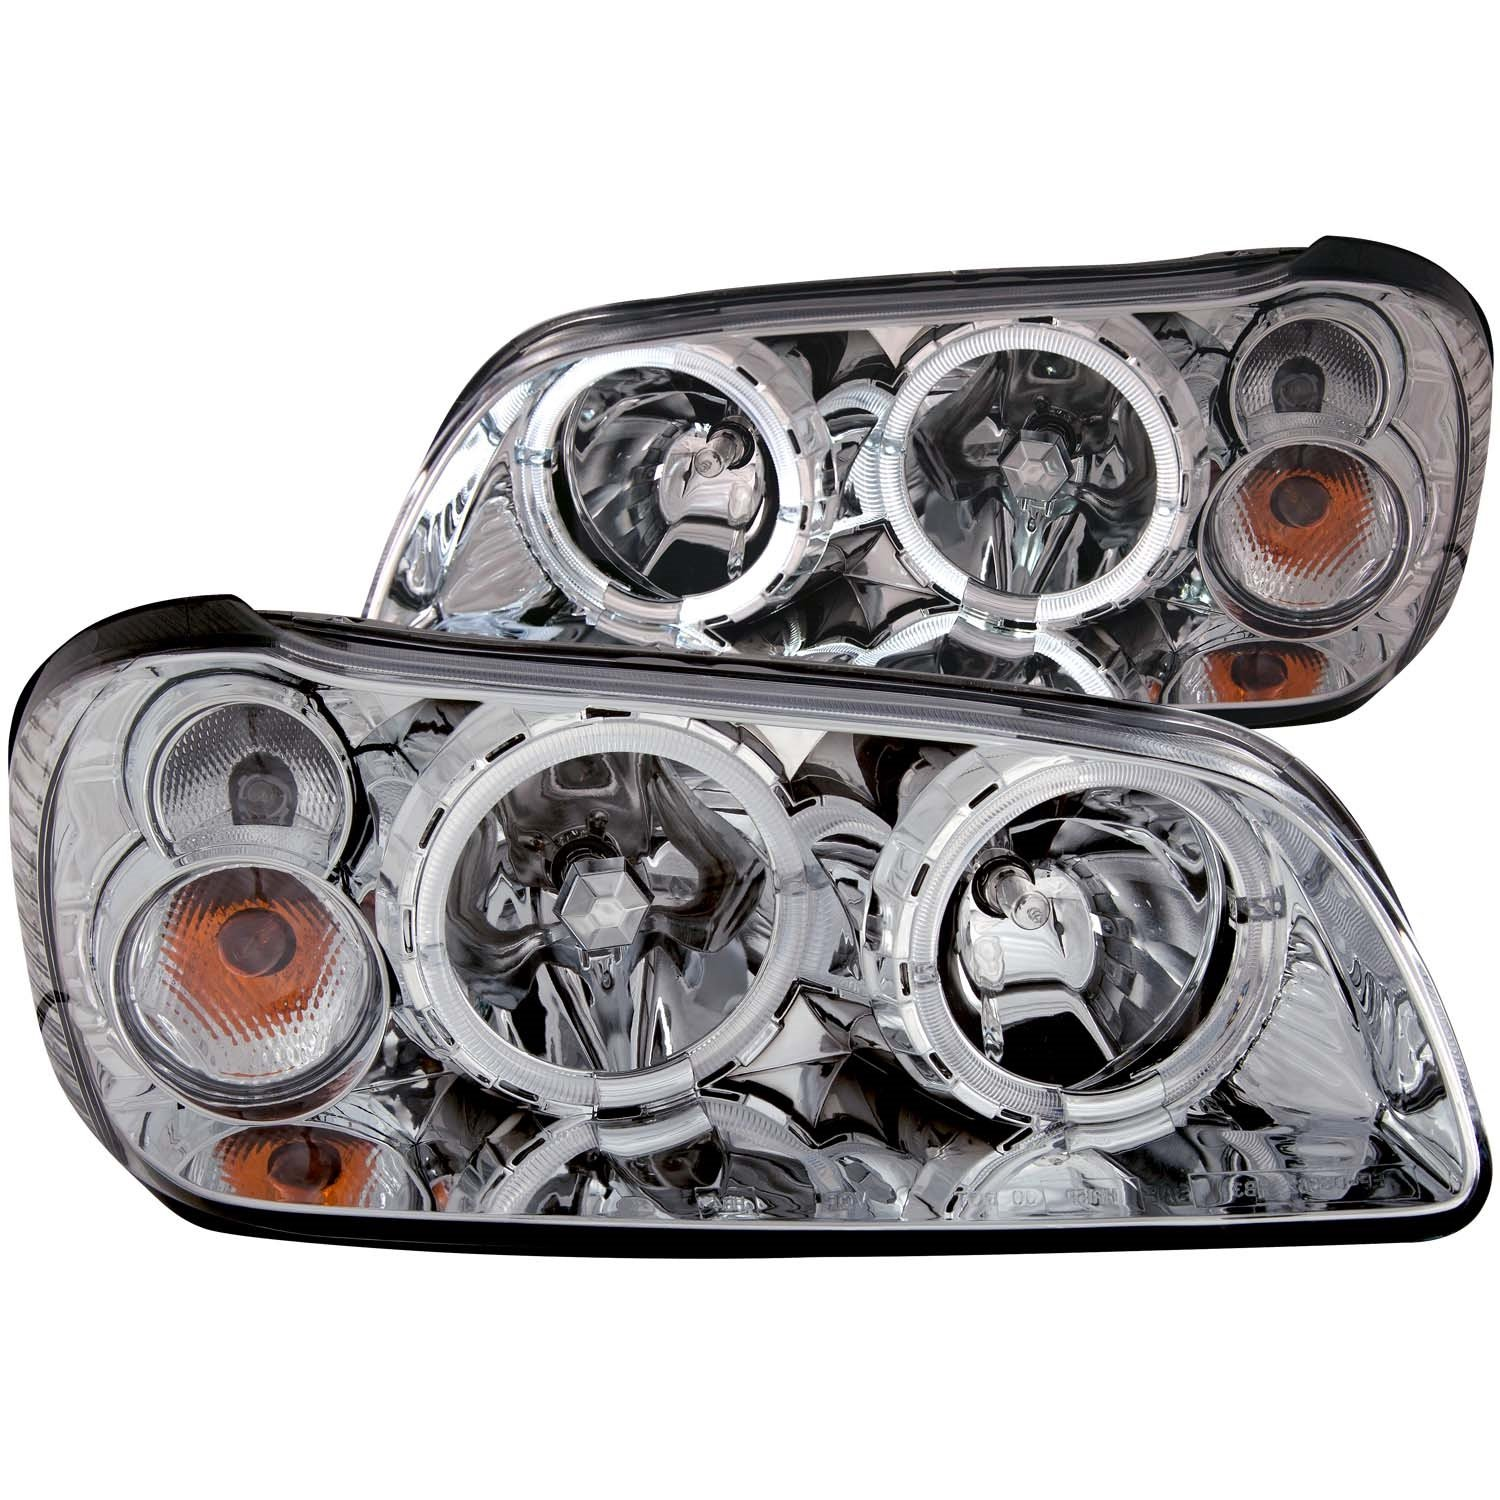 Sold in Pairs Anzo USA 121113 Nissan Maxima With Halo Black Headlight Assembly